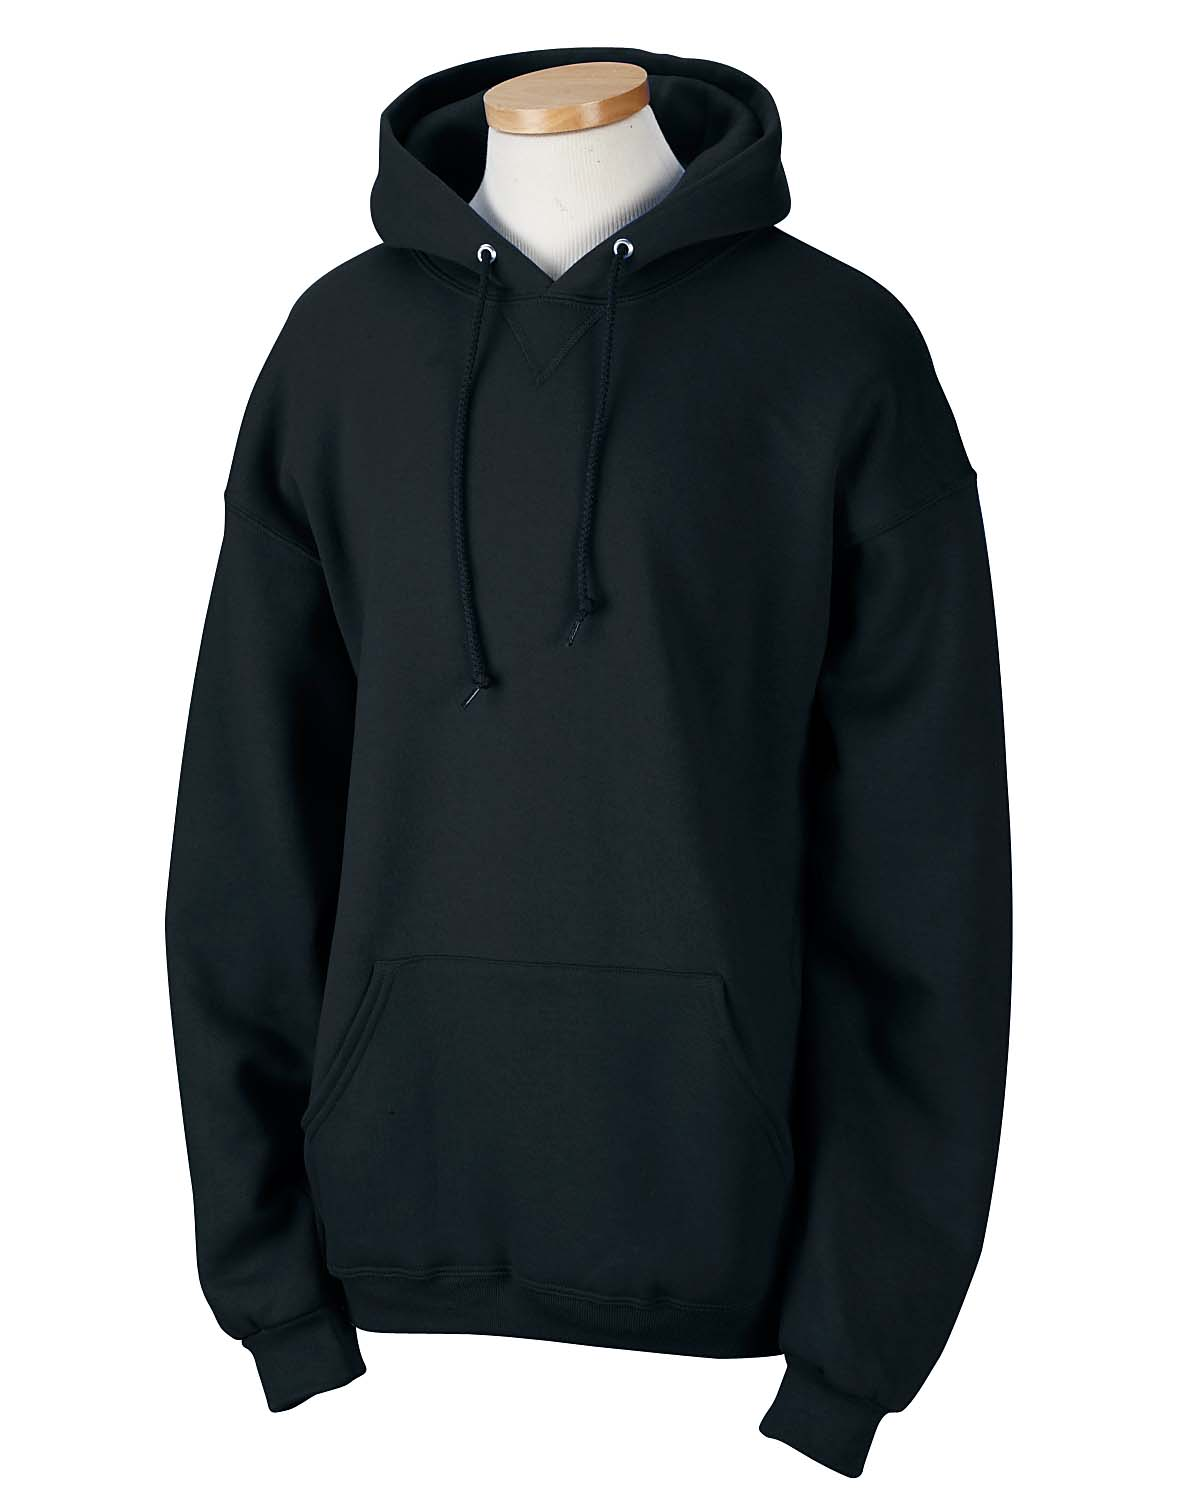 Black Sweatshirt Hoodie | Fashion Ql